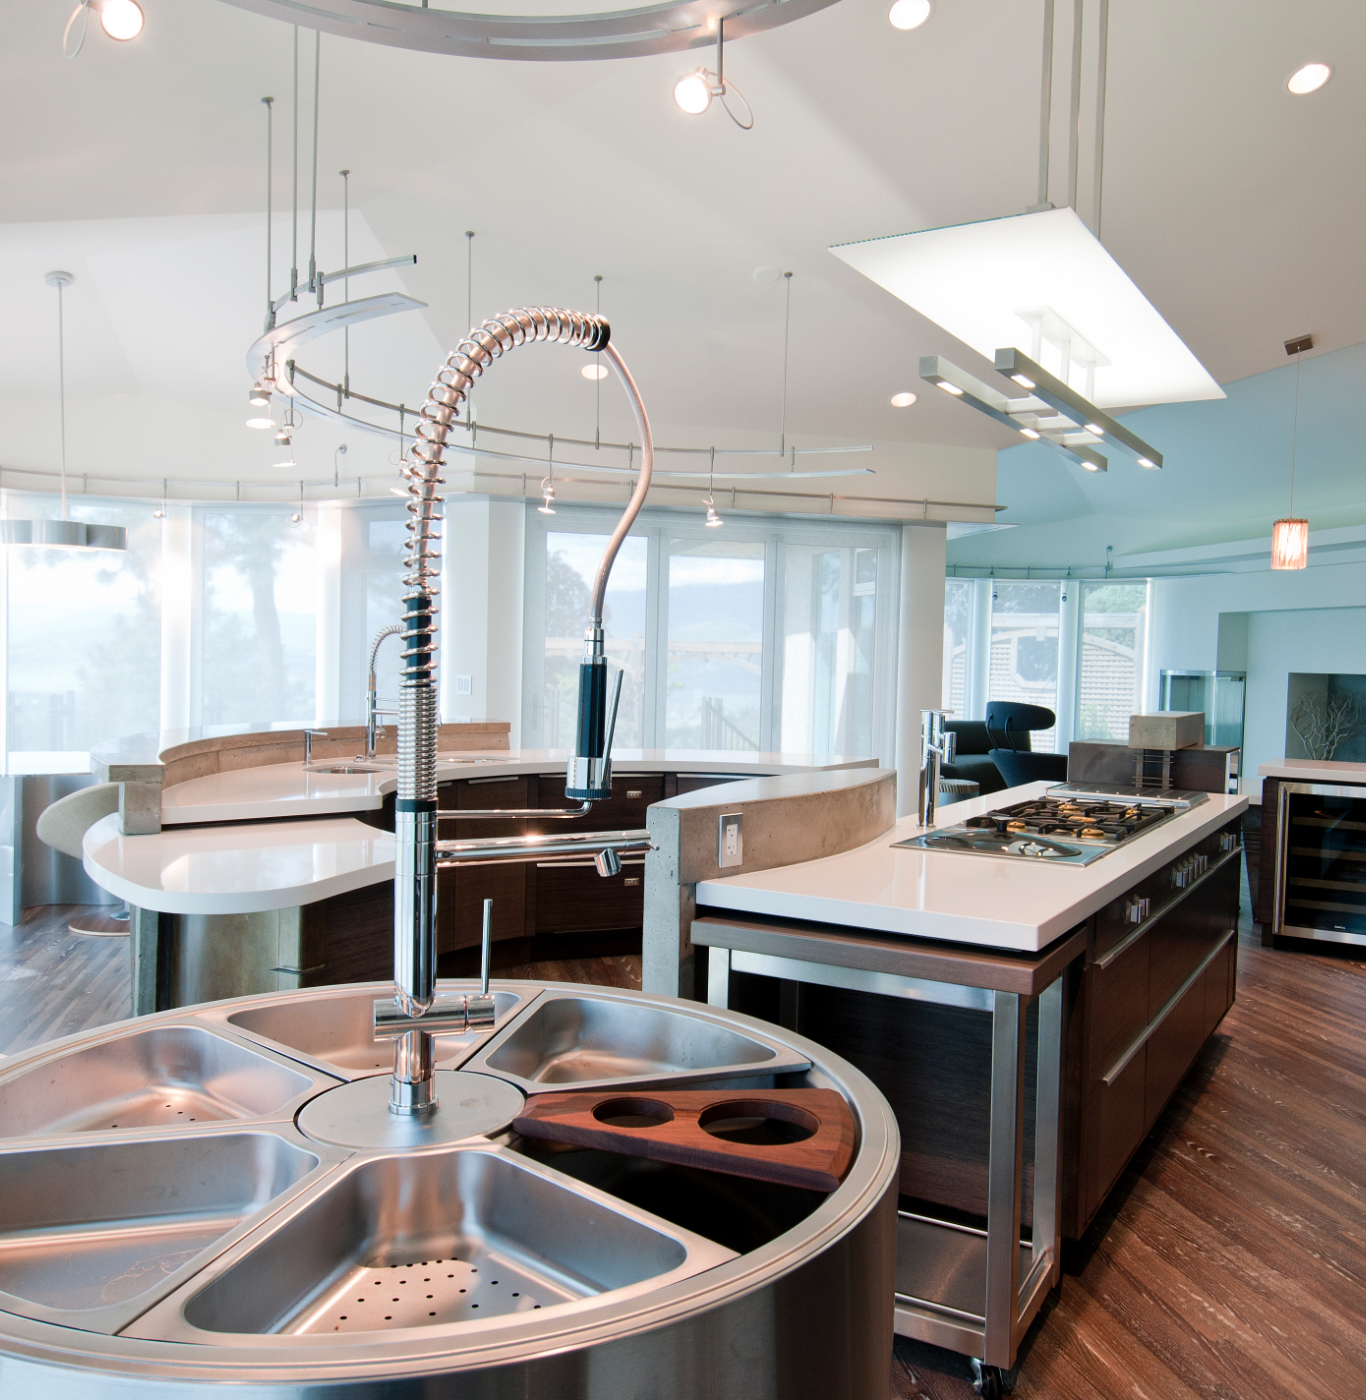 Curved island and sink